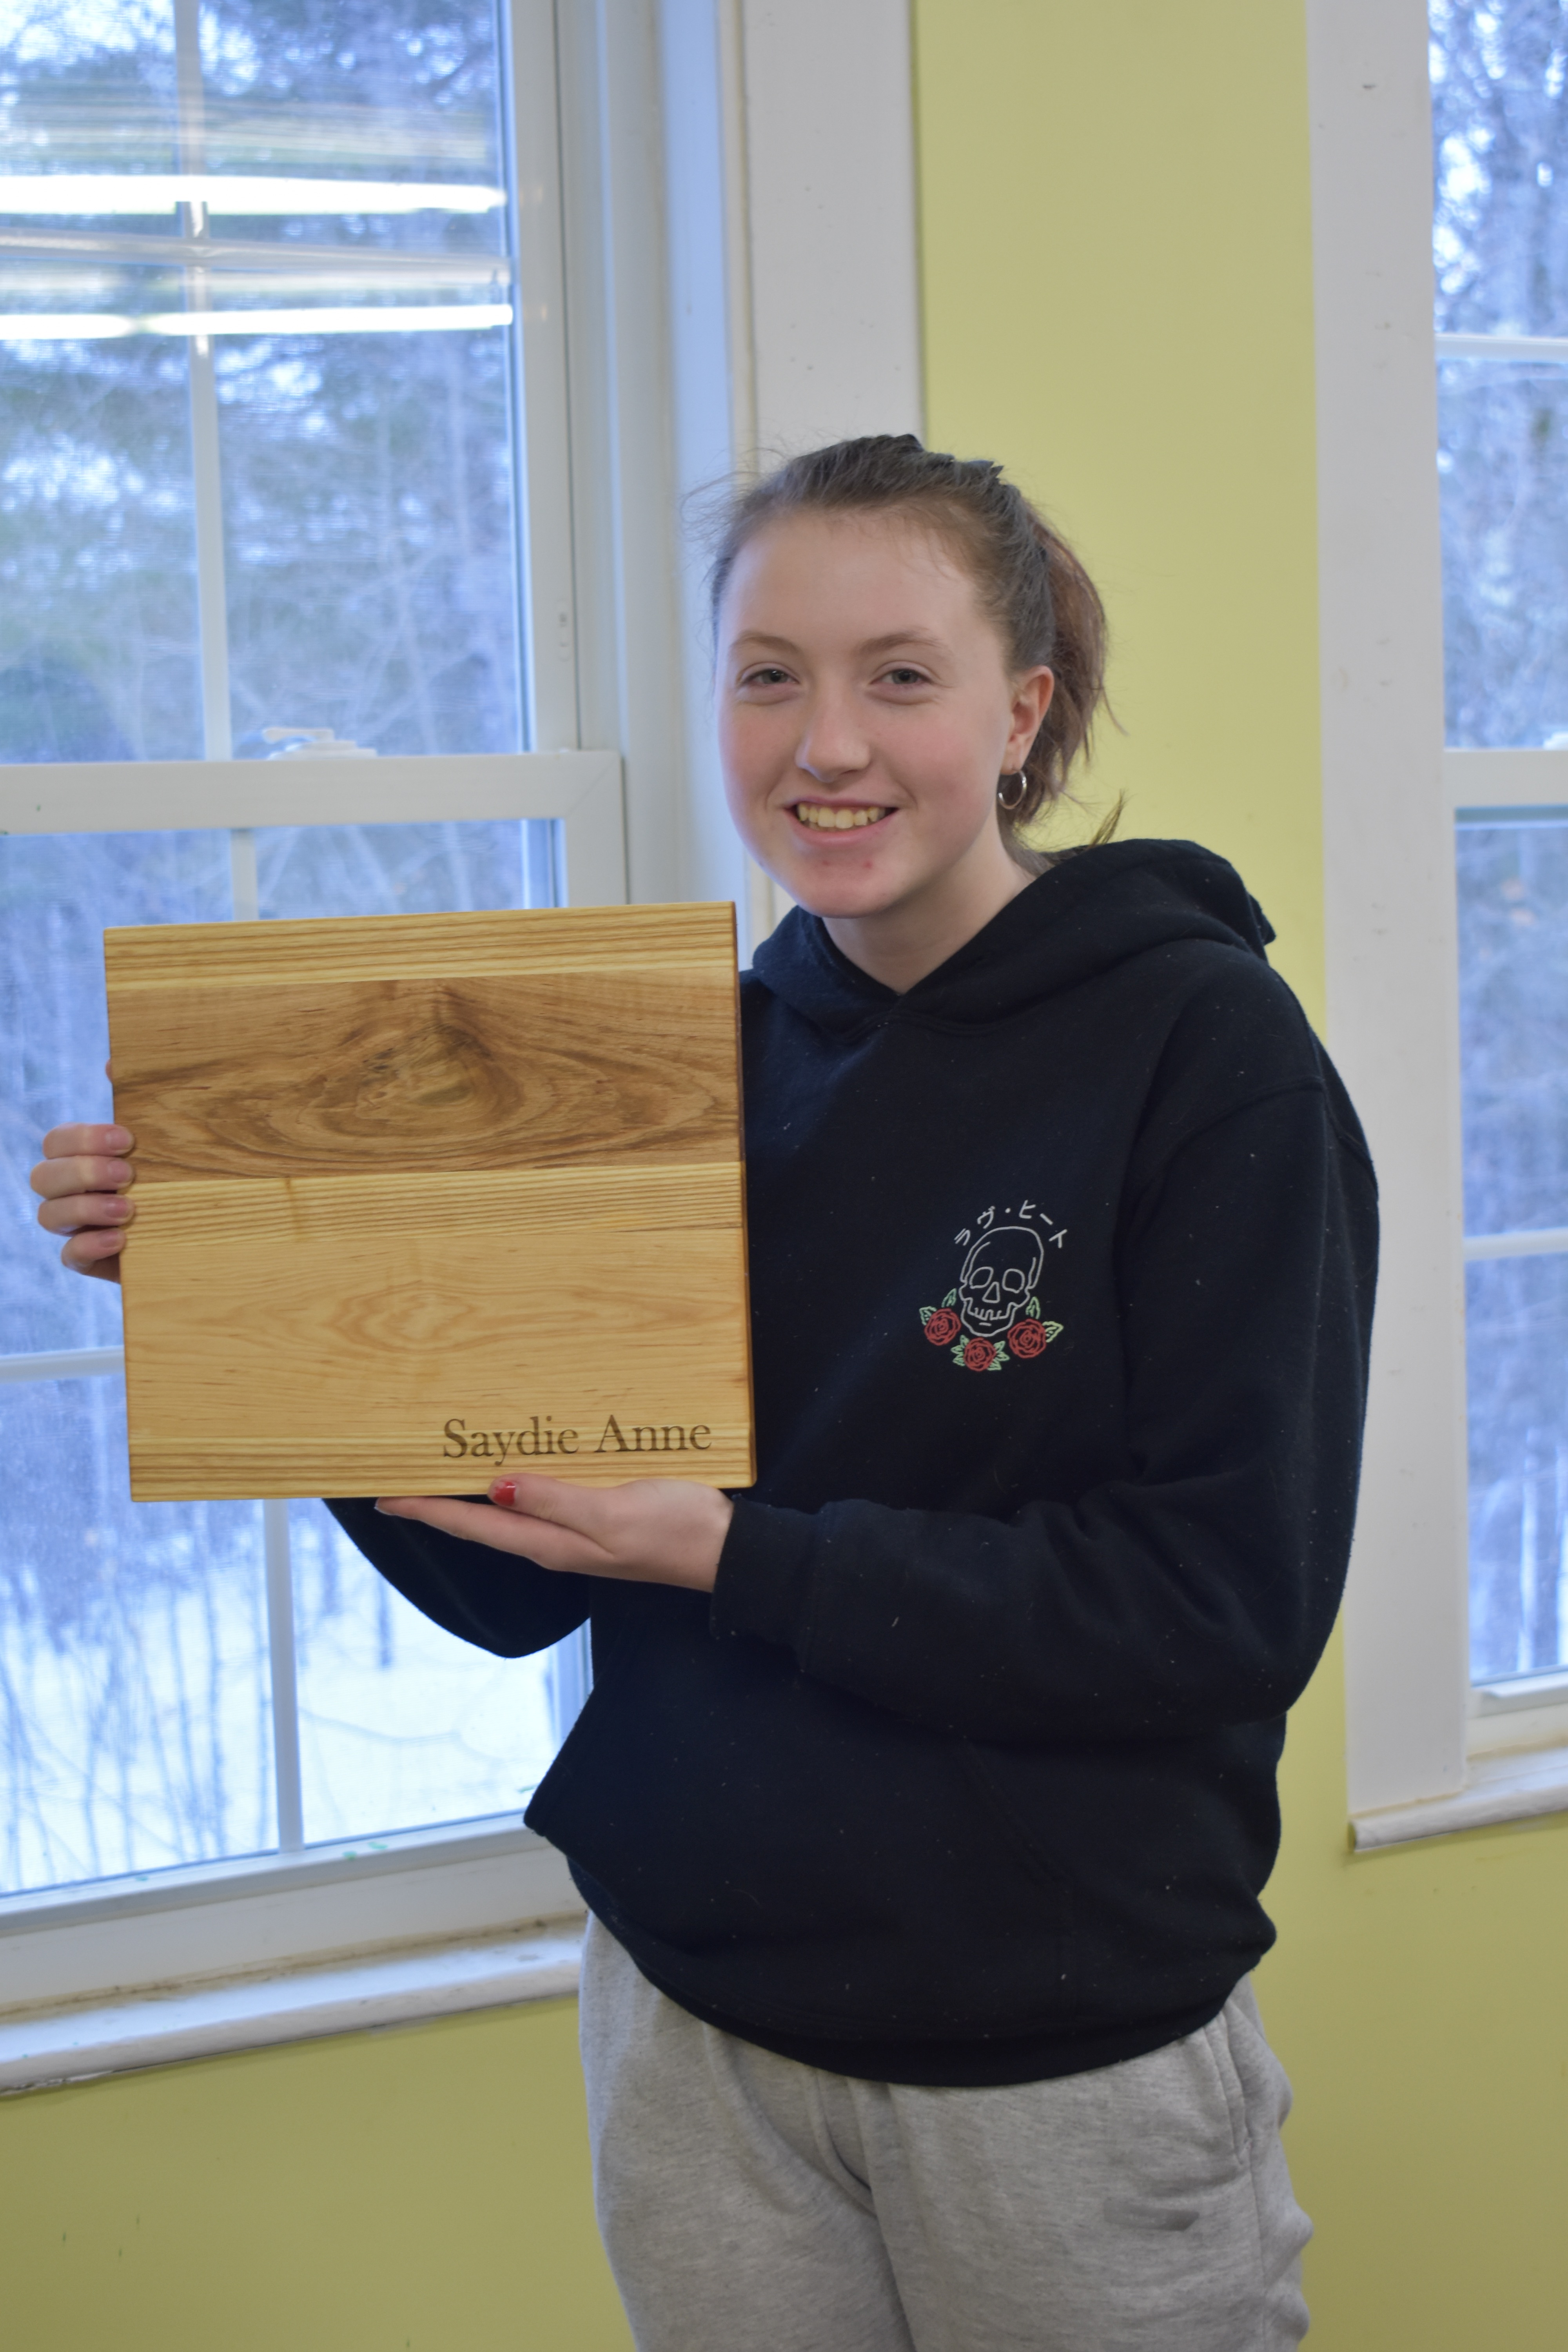 Saydie with Cutting Board